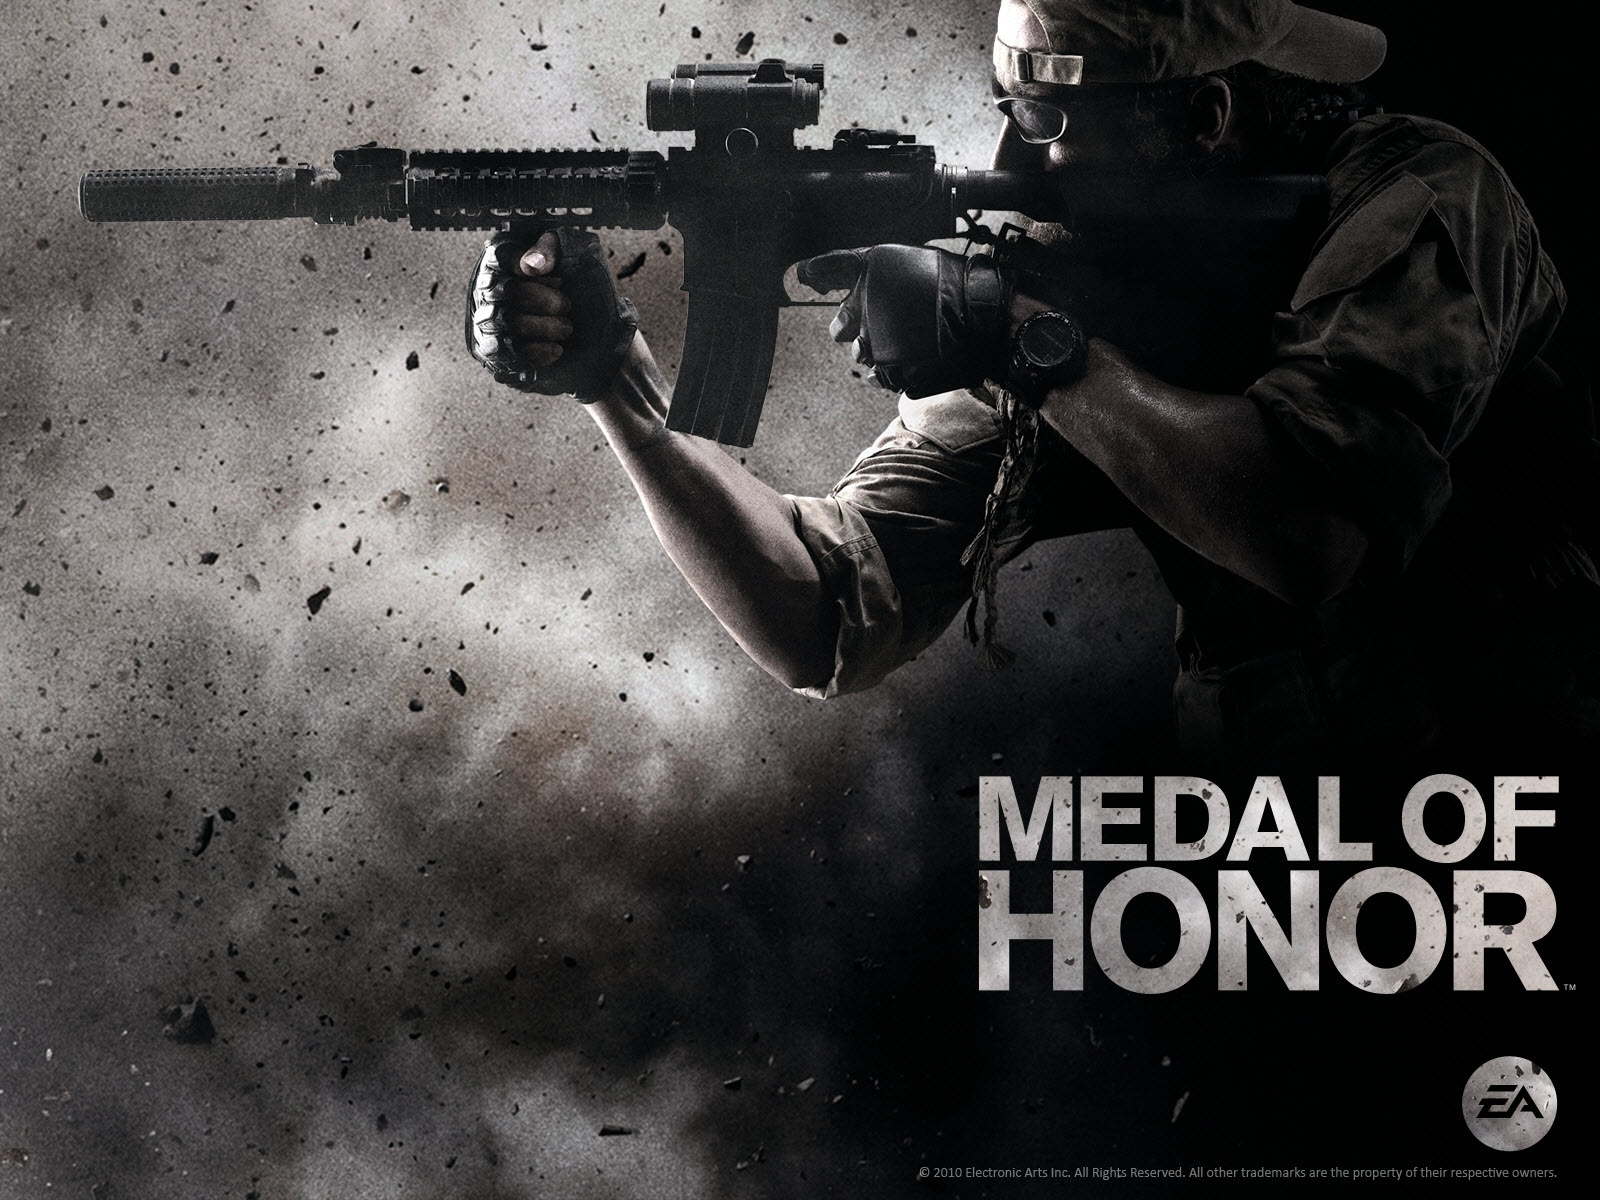 GearDiary PC/XBOX360/PS3 Game Review: 'Meh'dal of Honor